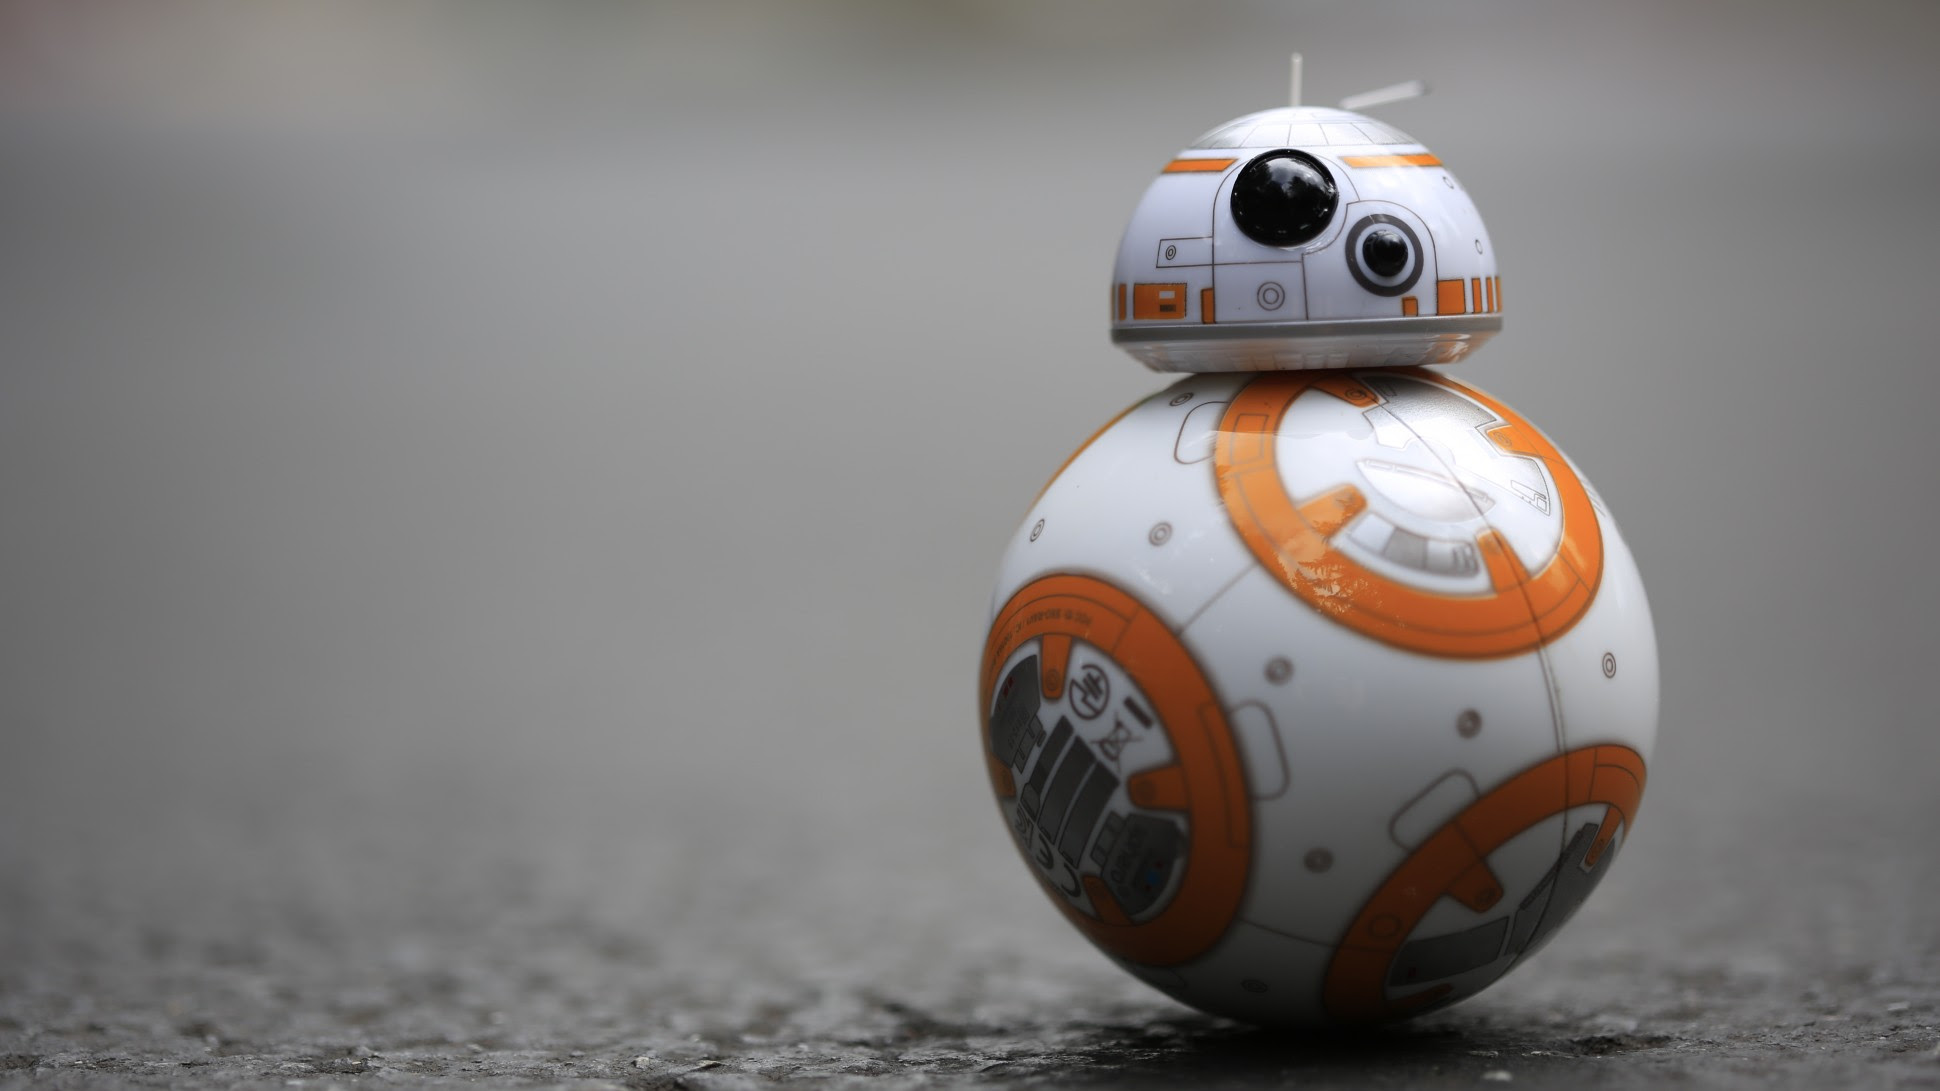 BB 8 Unit Gambar Wp2 HD Wallpaper And Background Foto